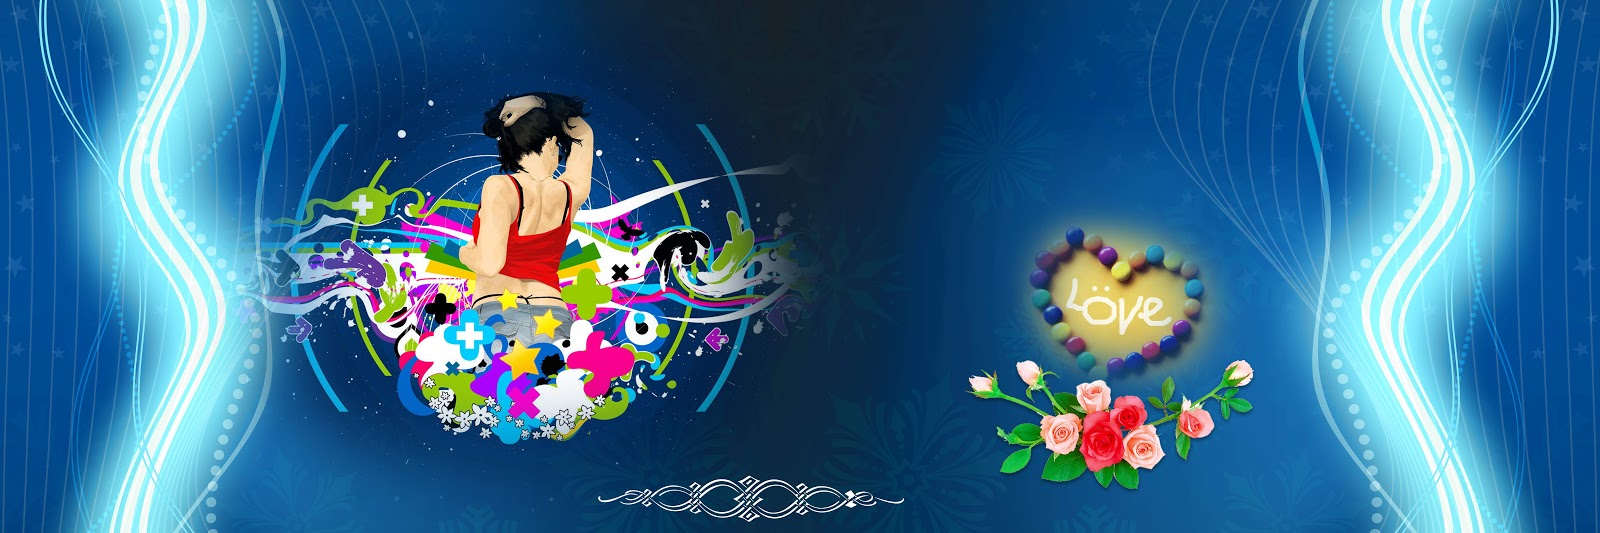 Sunday Special Designs .....Free Download Karizma Backgrounds